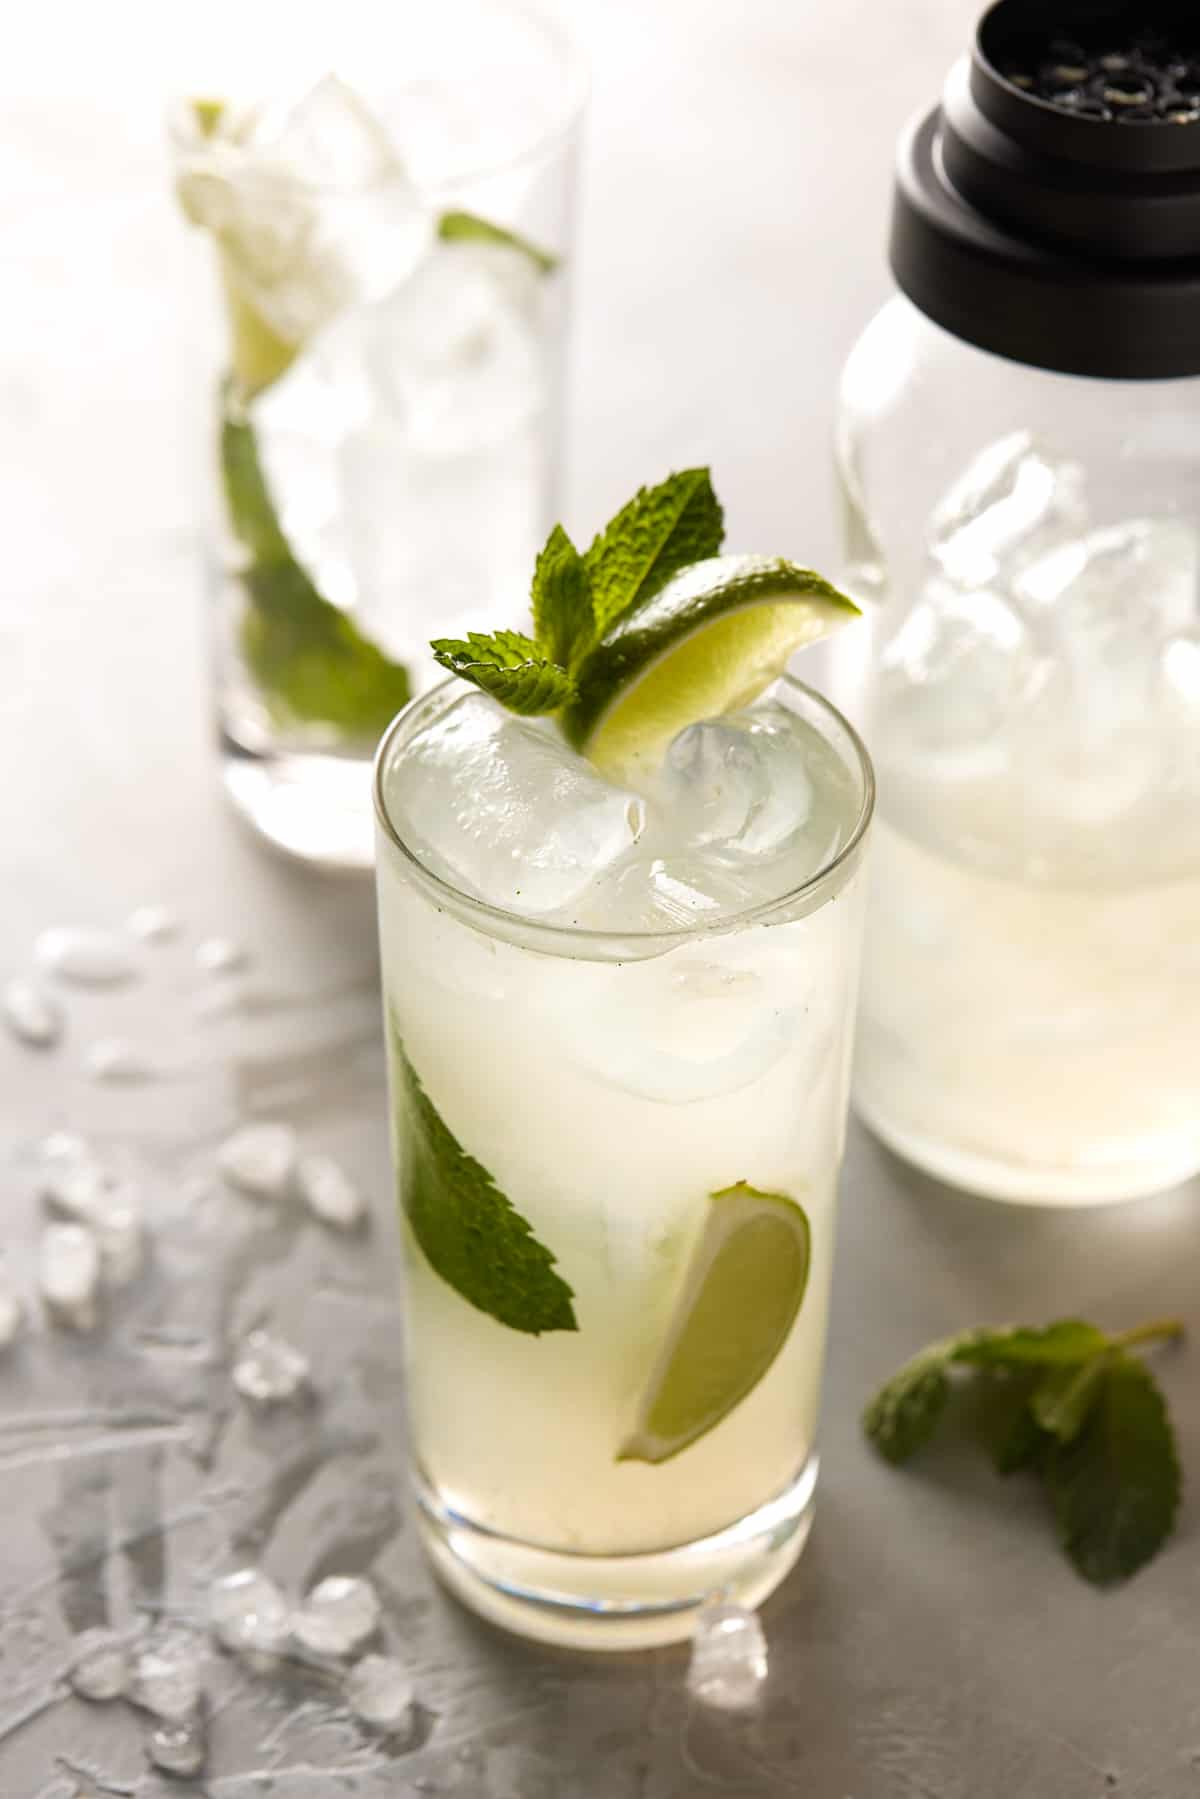 High ball glass filled with drink and garnished with mint leaves and lime wedges.